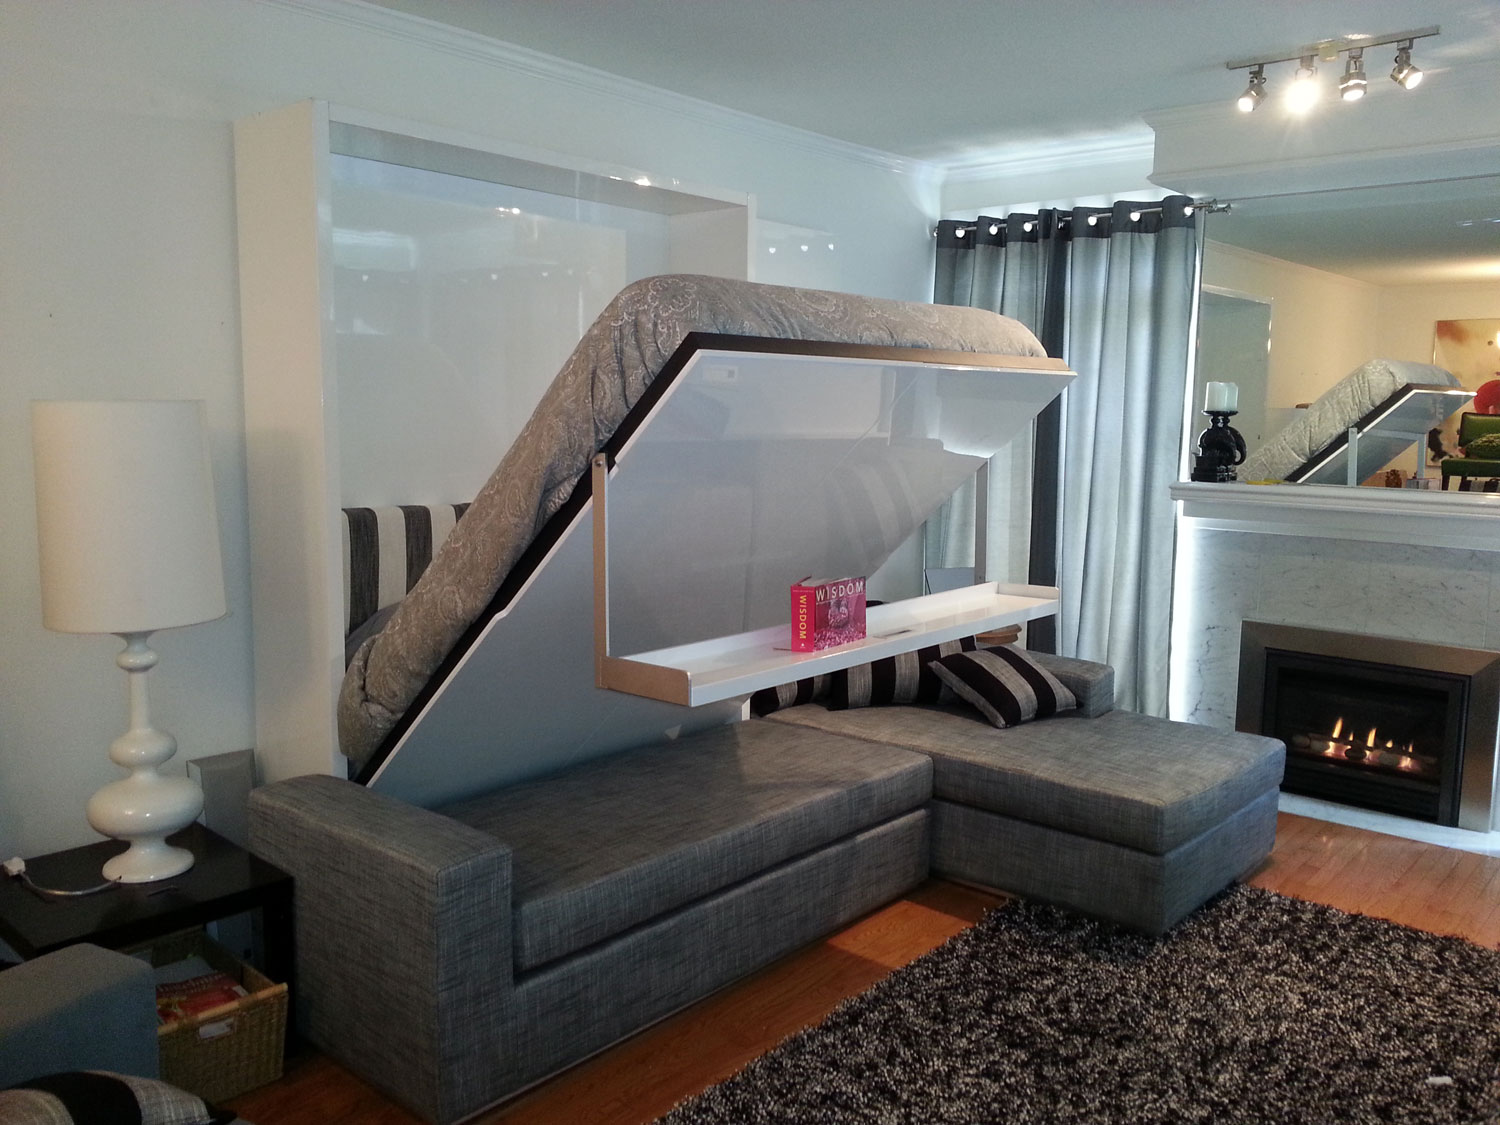 Bed That Folds Into Wall In Combination With Gray Sectional Sofa With  Striped Cushion And Soft